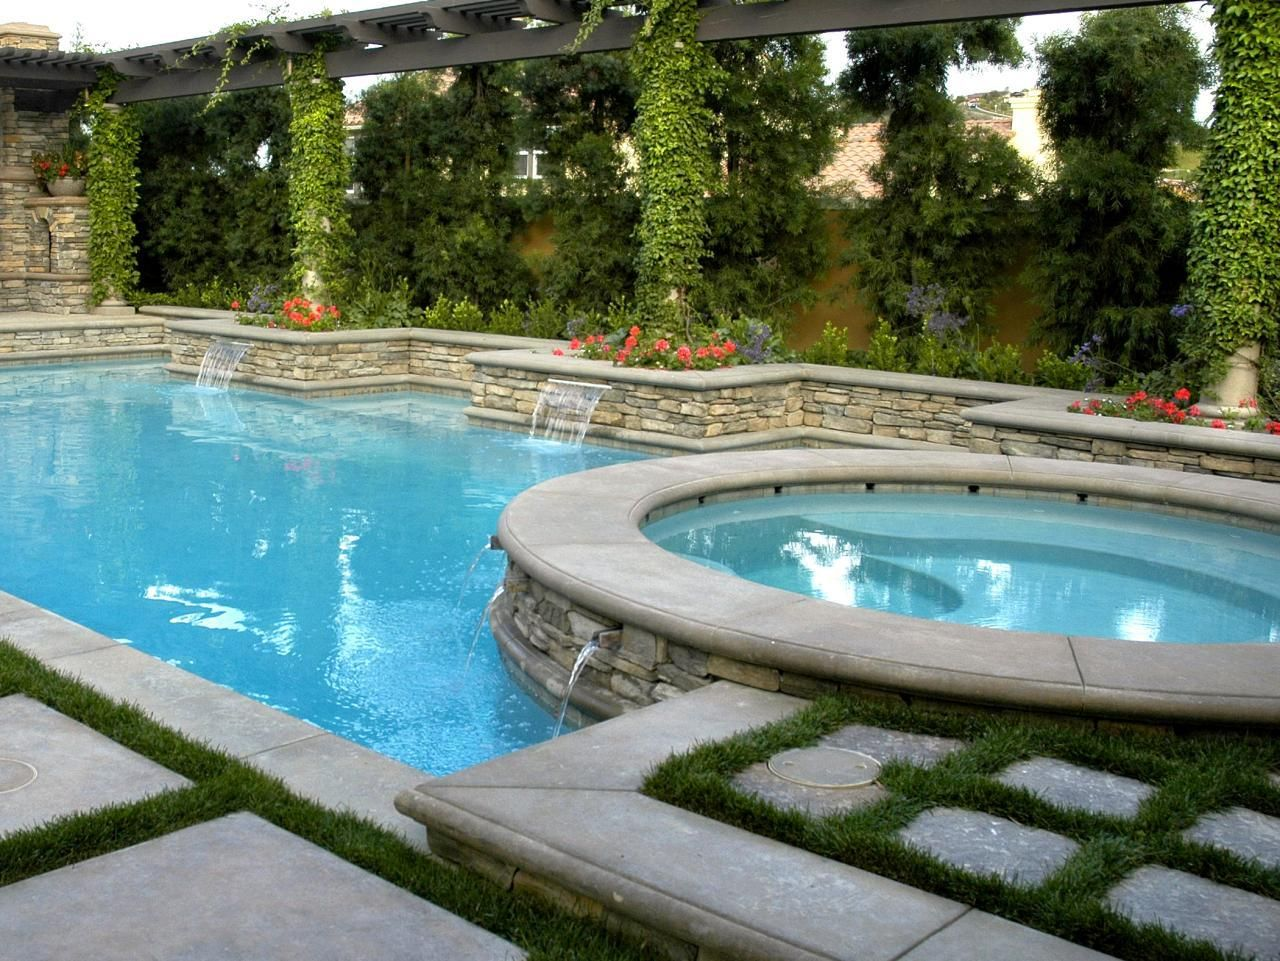 Pool Spa Design Ideas With Images